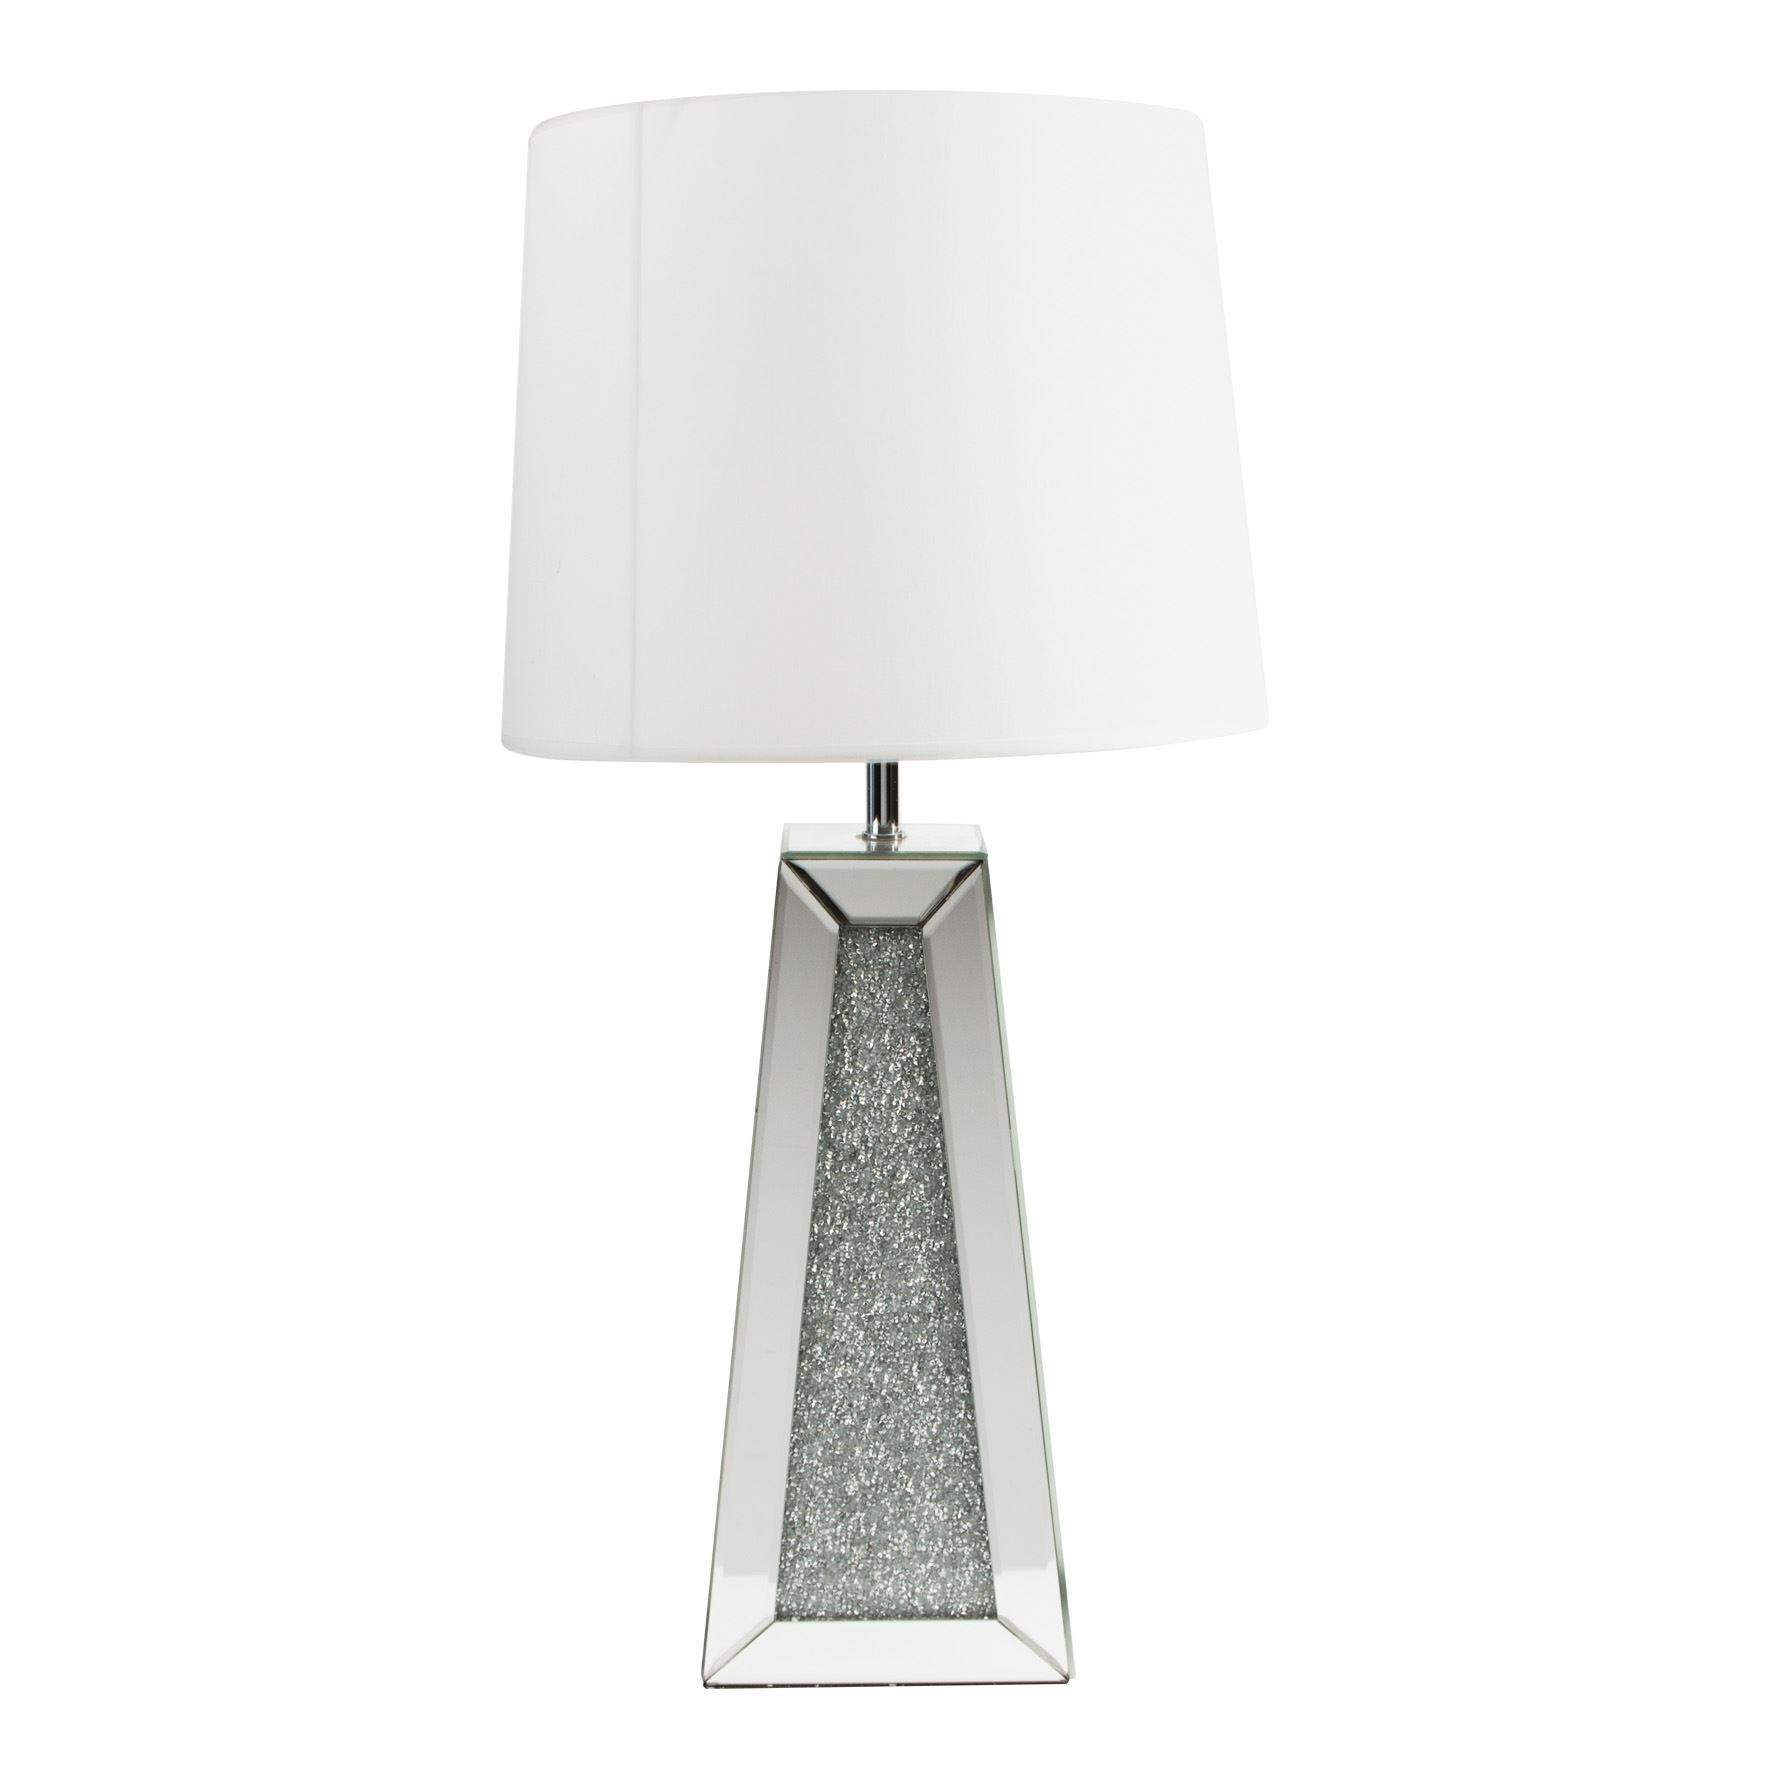 Hestia Mirror Glass Tapered Table Lamp w/ Crystals